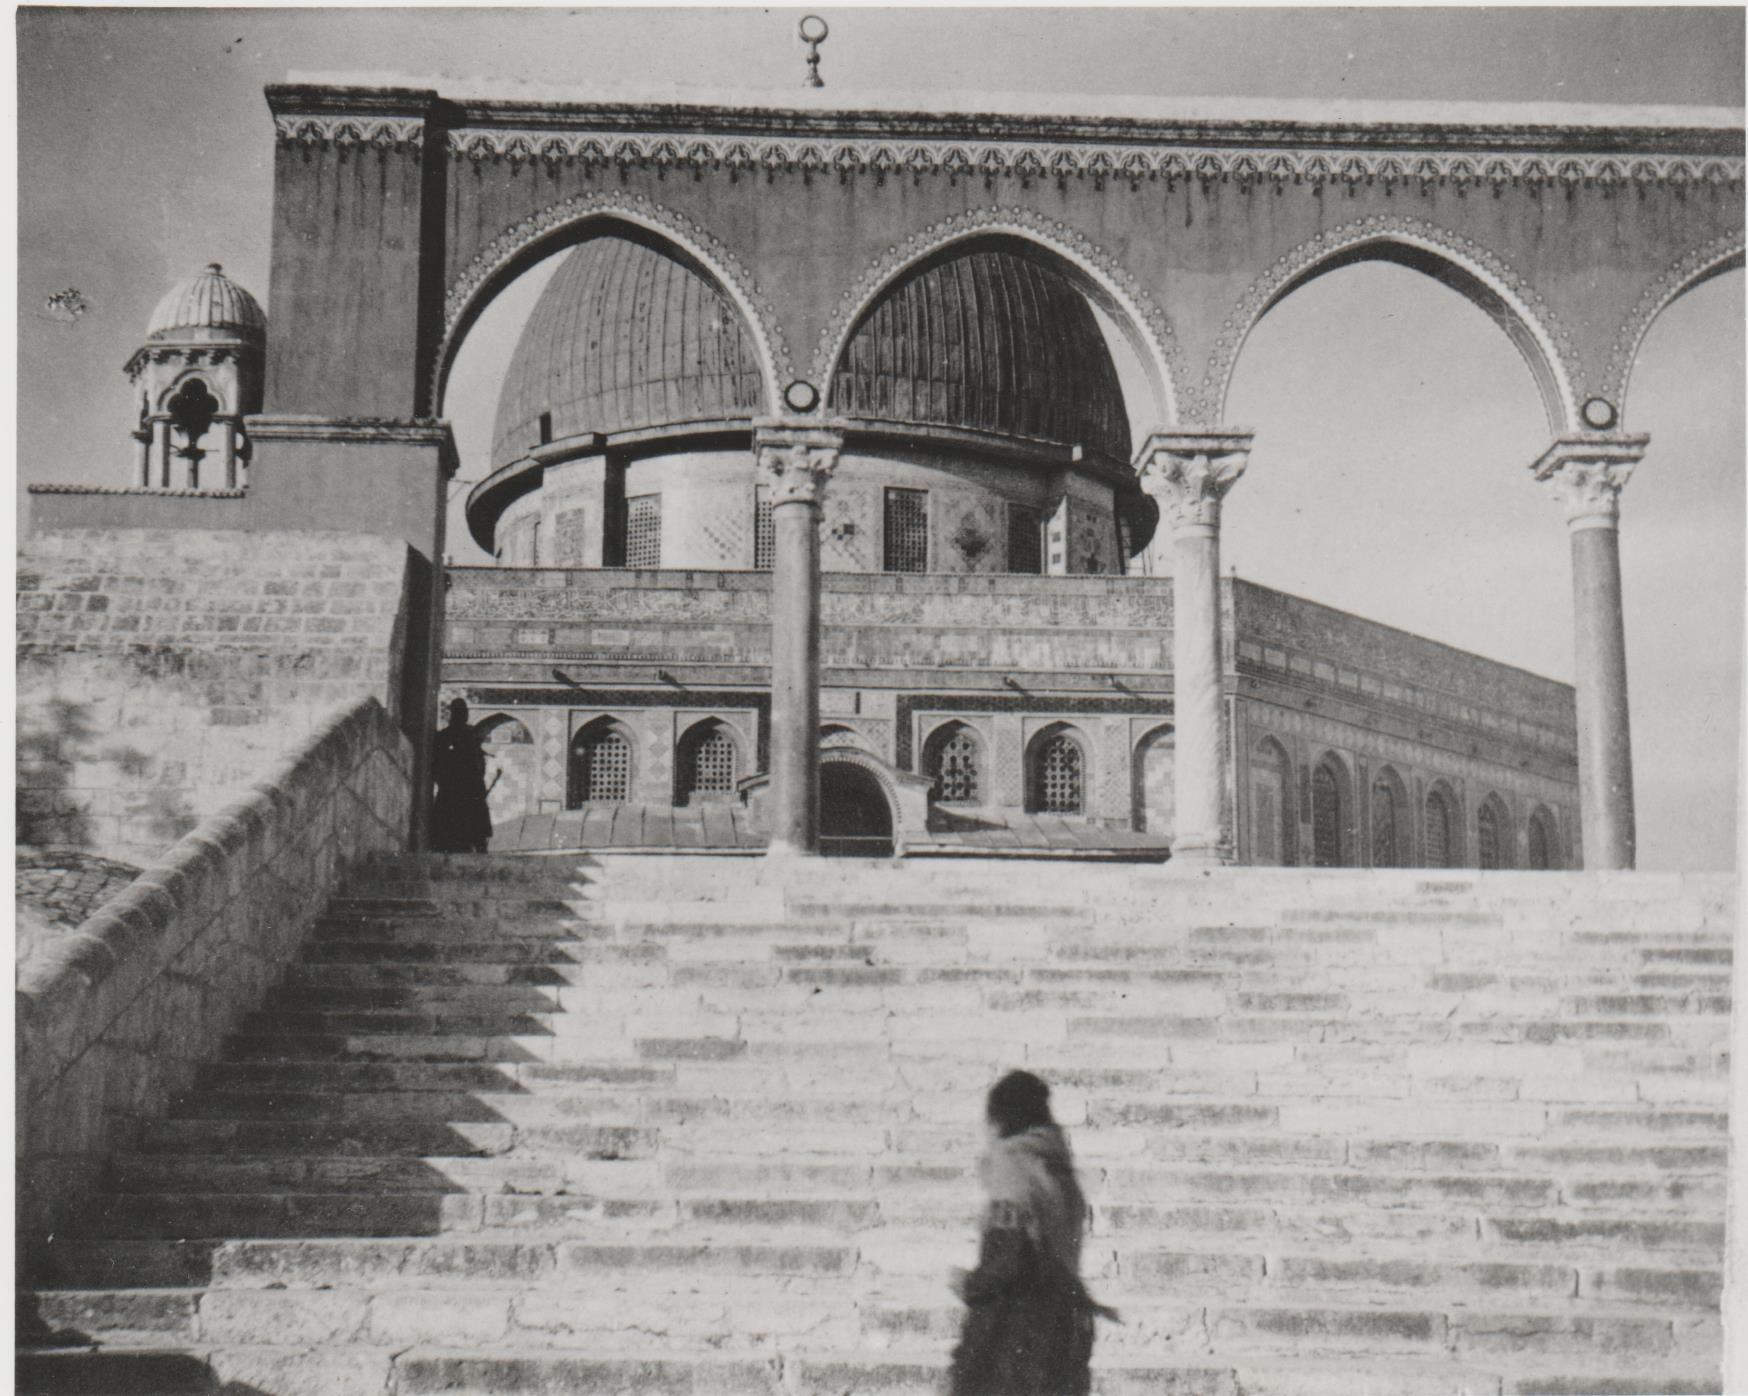 Gertrude Bell's photograph of 'the view up to the Dome of the Rock through entrance archways, AD 691', December 1899. Catalogue number A53.